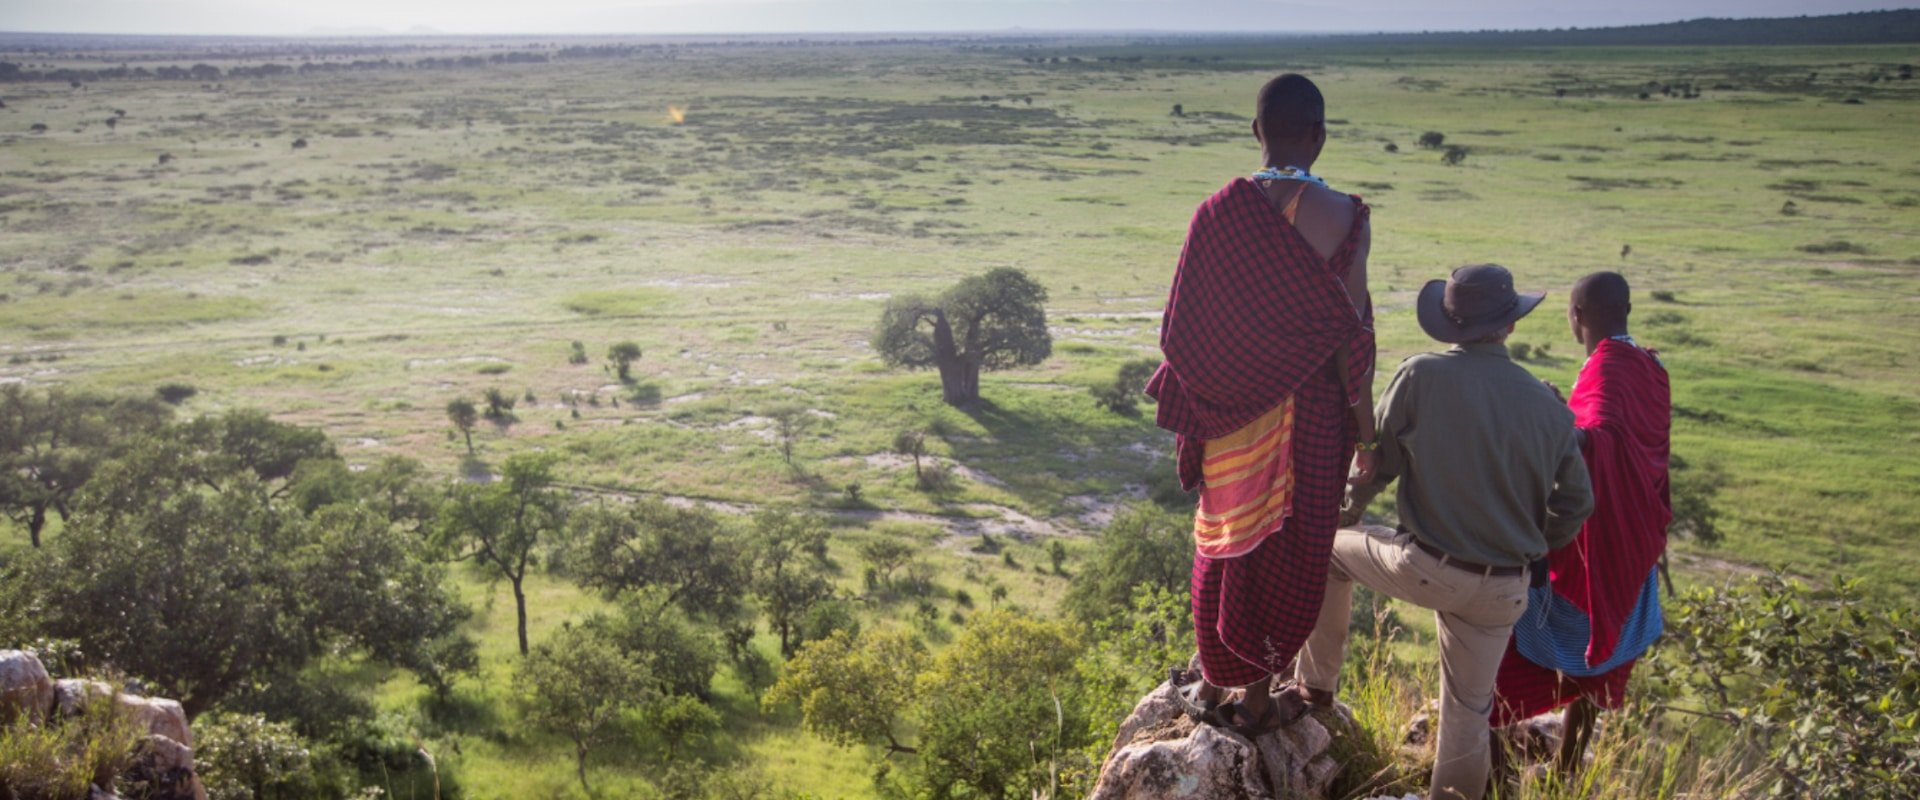 A culturally rich meeting of the Maasai people